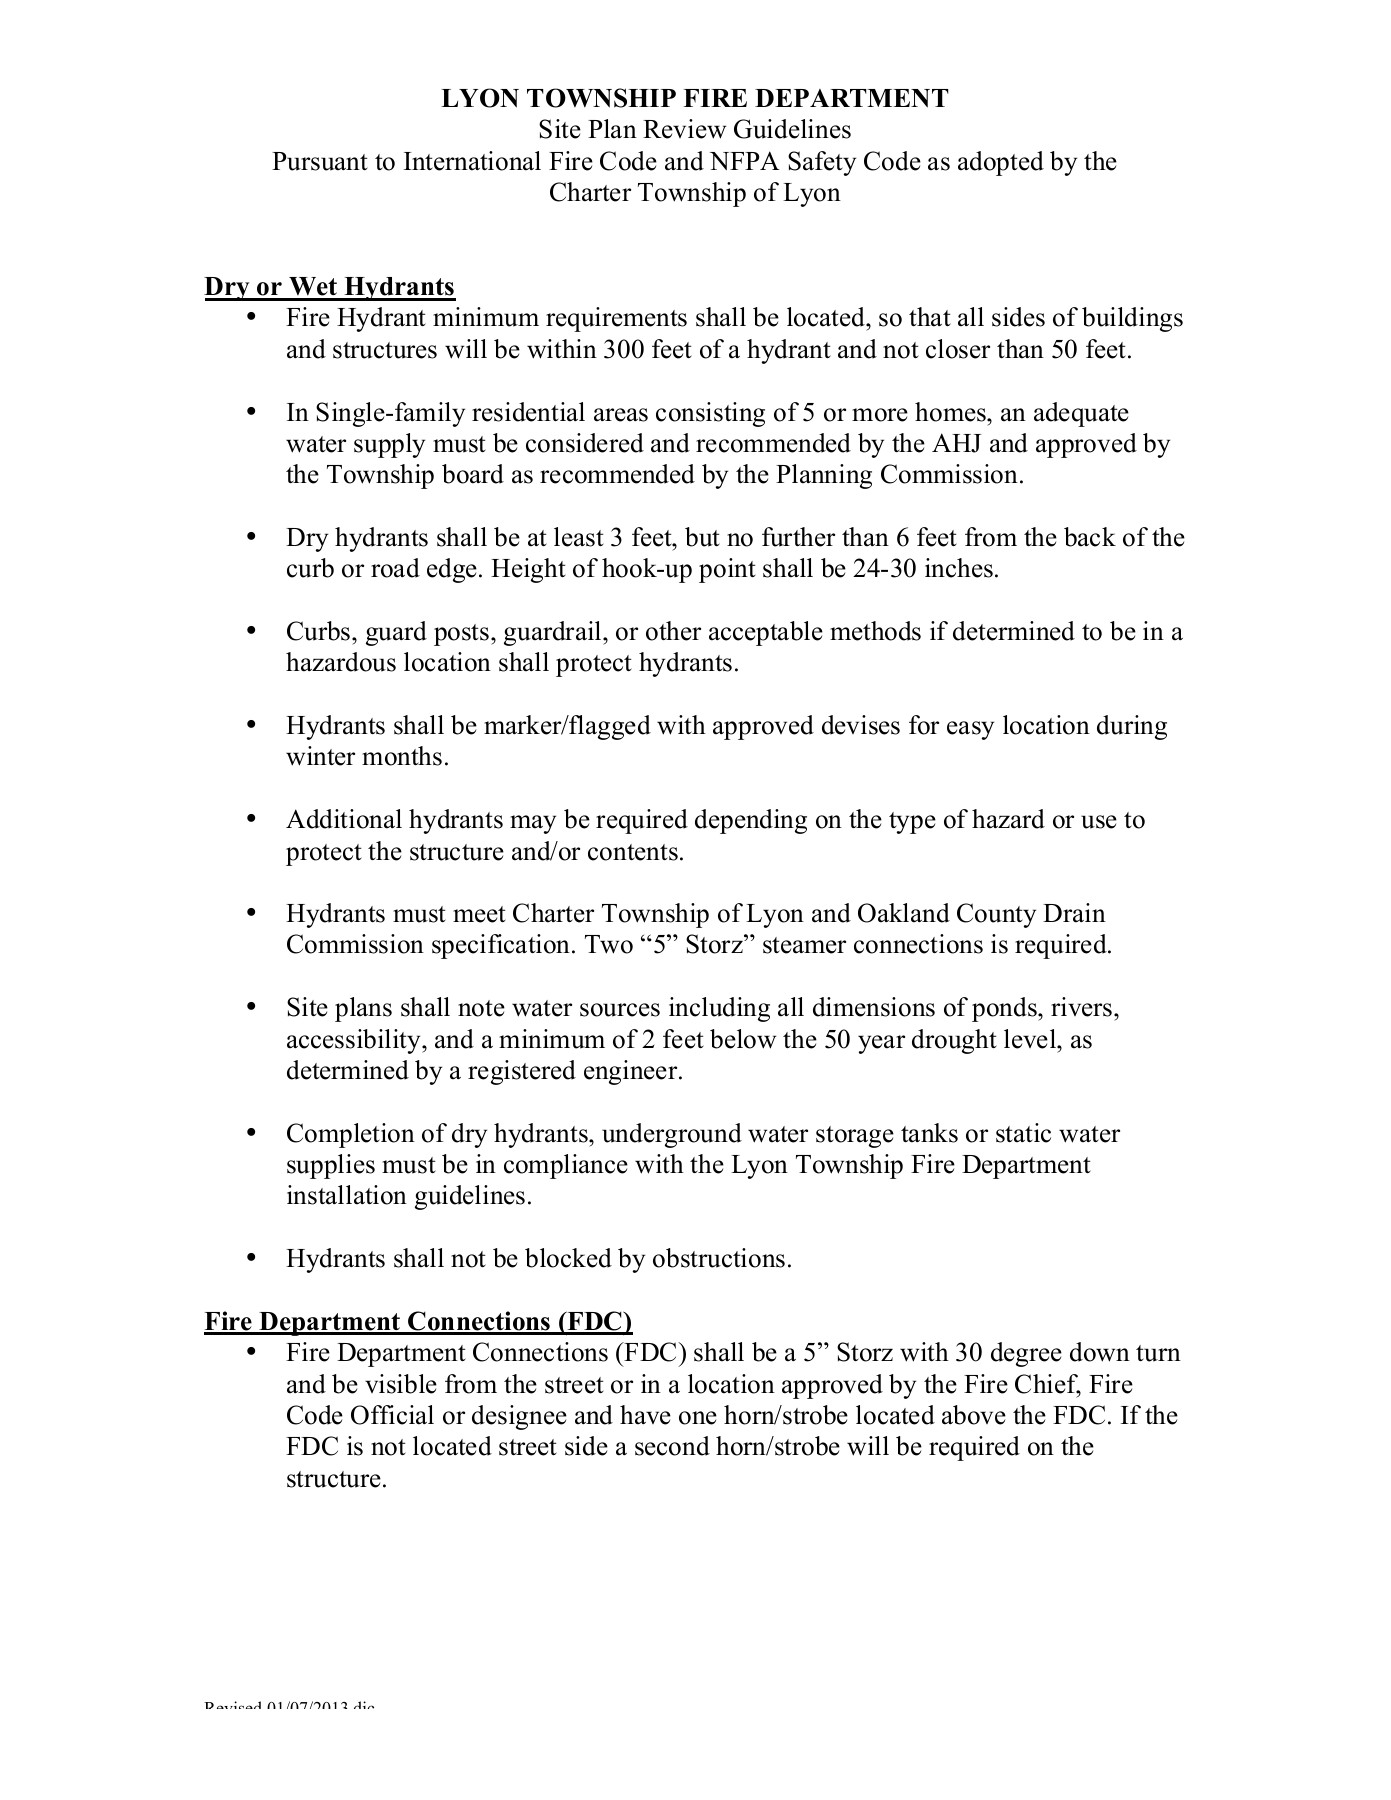 Site plan guidelines - lyontwp org Pages 1 - 4 - Text Version | AnyFlip